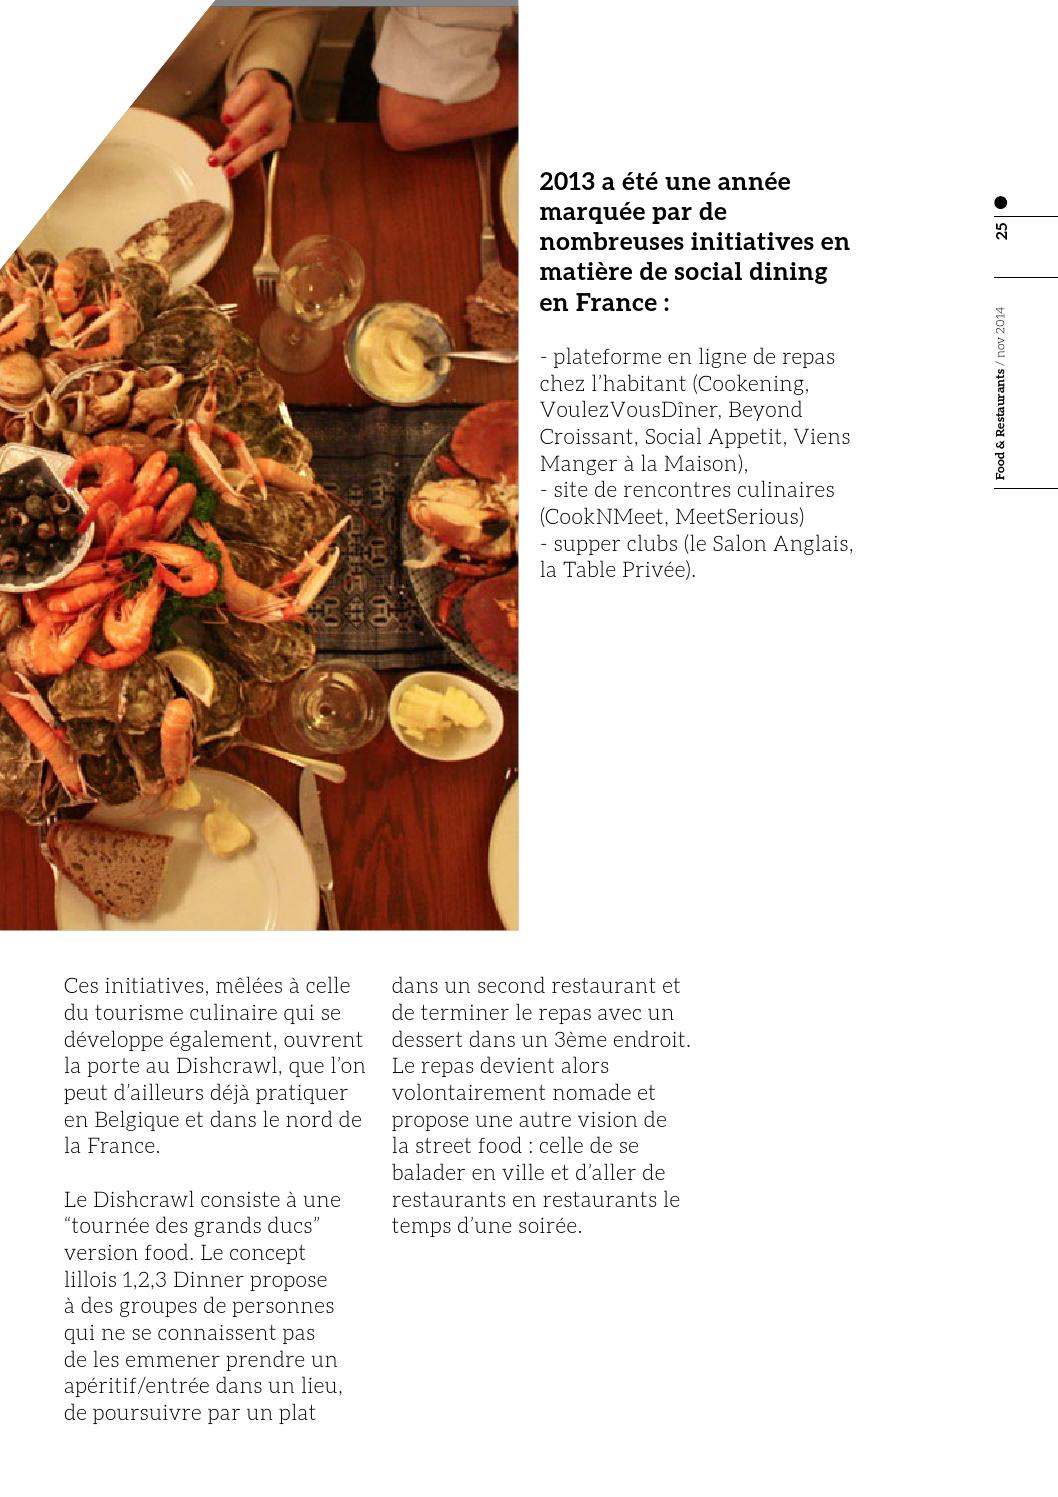 site rencontres culinaires)